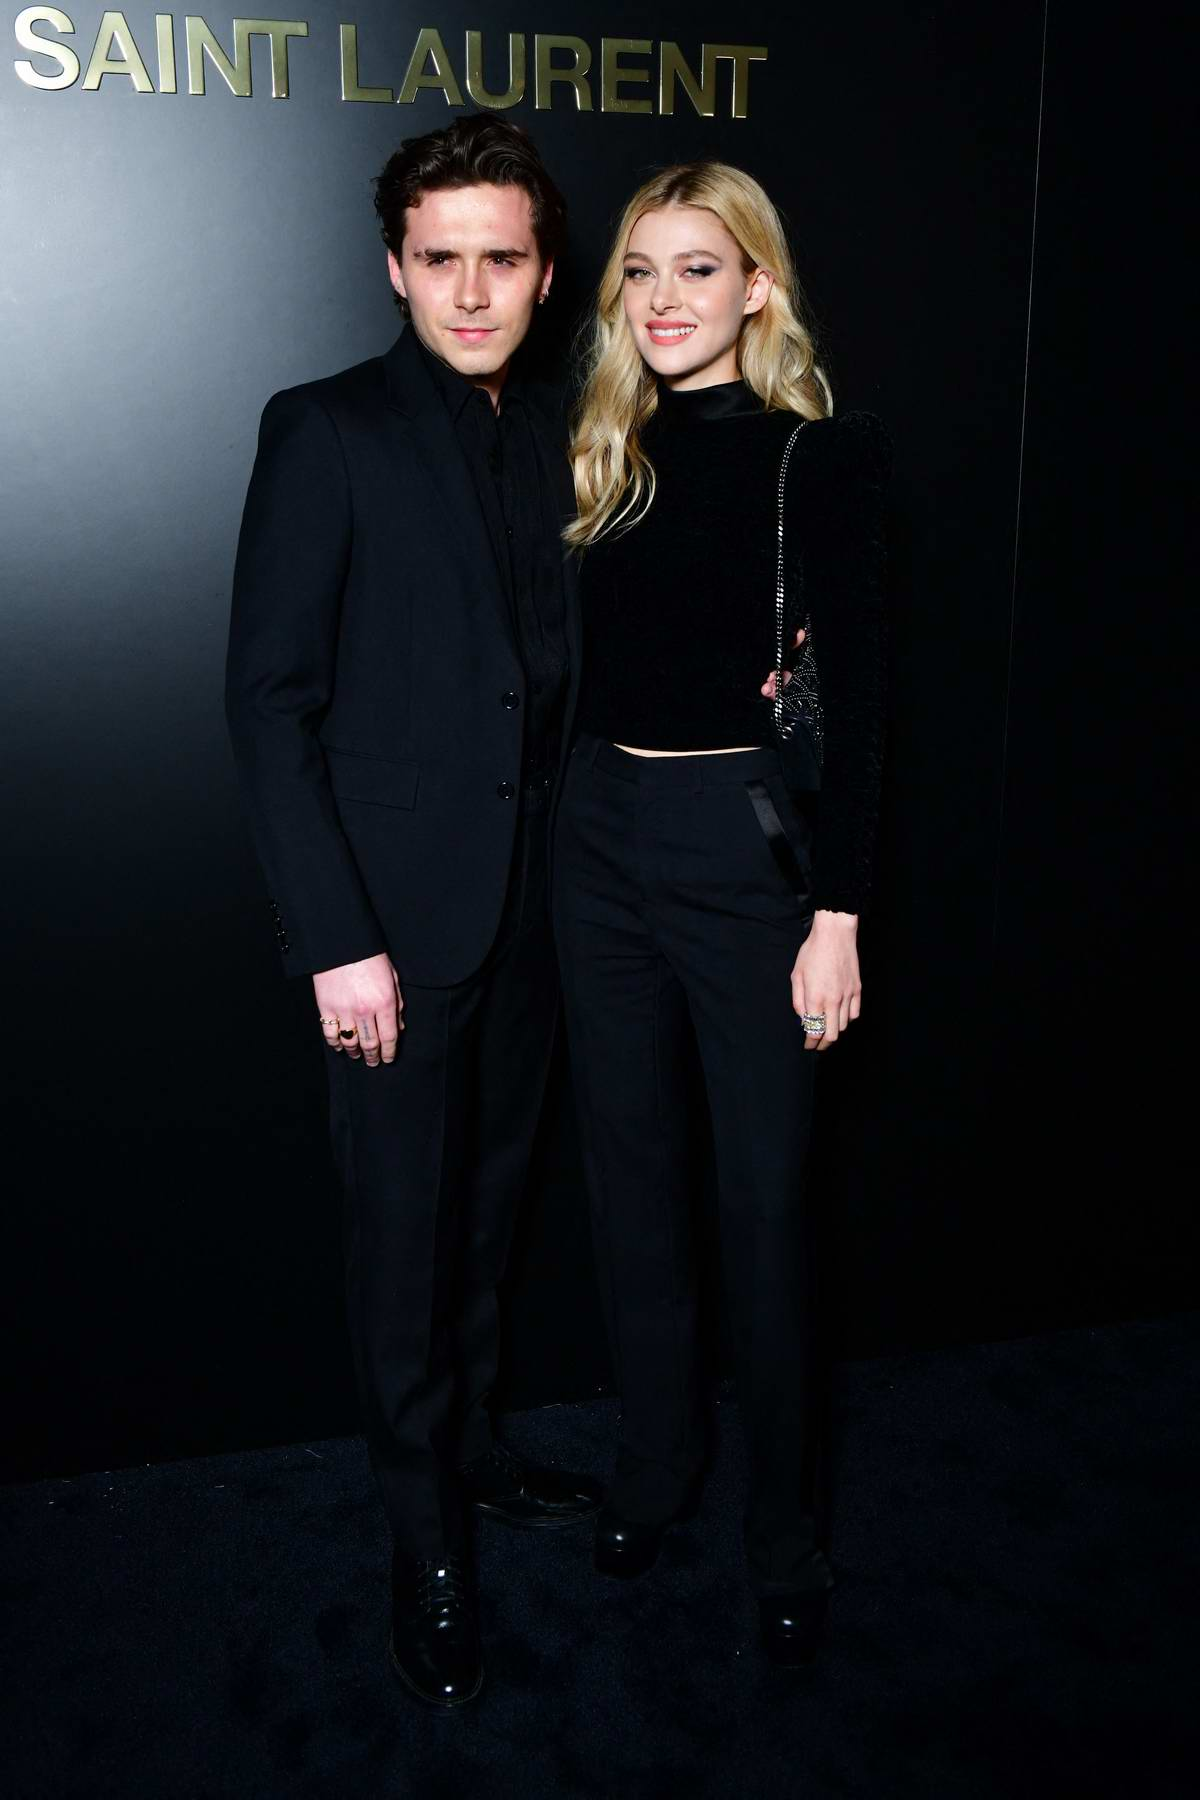 Nicola Peltz and Brooklyn Beckham attend the Saint Laurent show, F/W 2020 during Paris Fashion Week in Paris, France